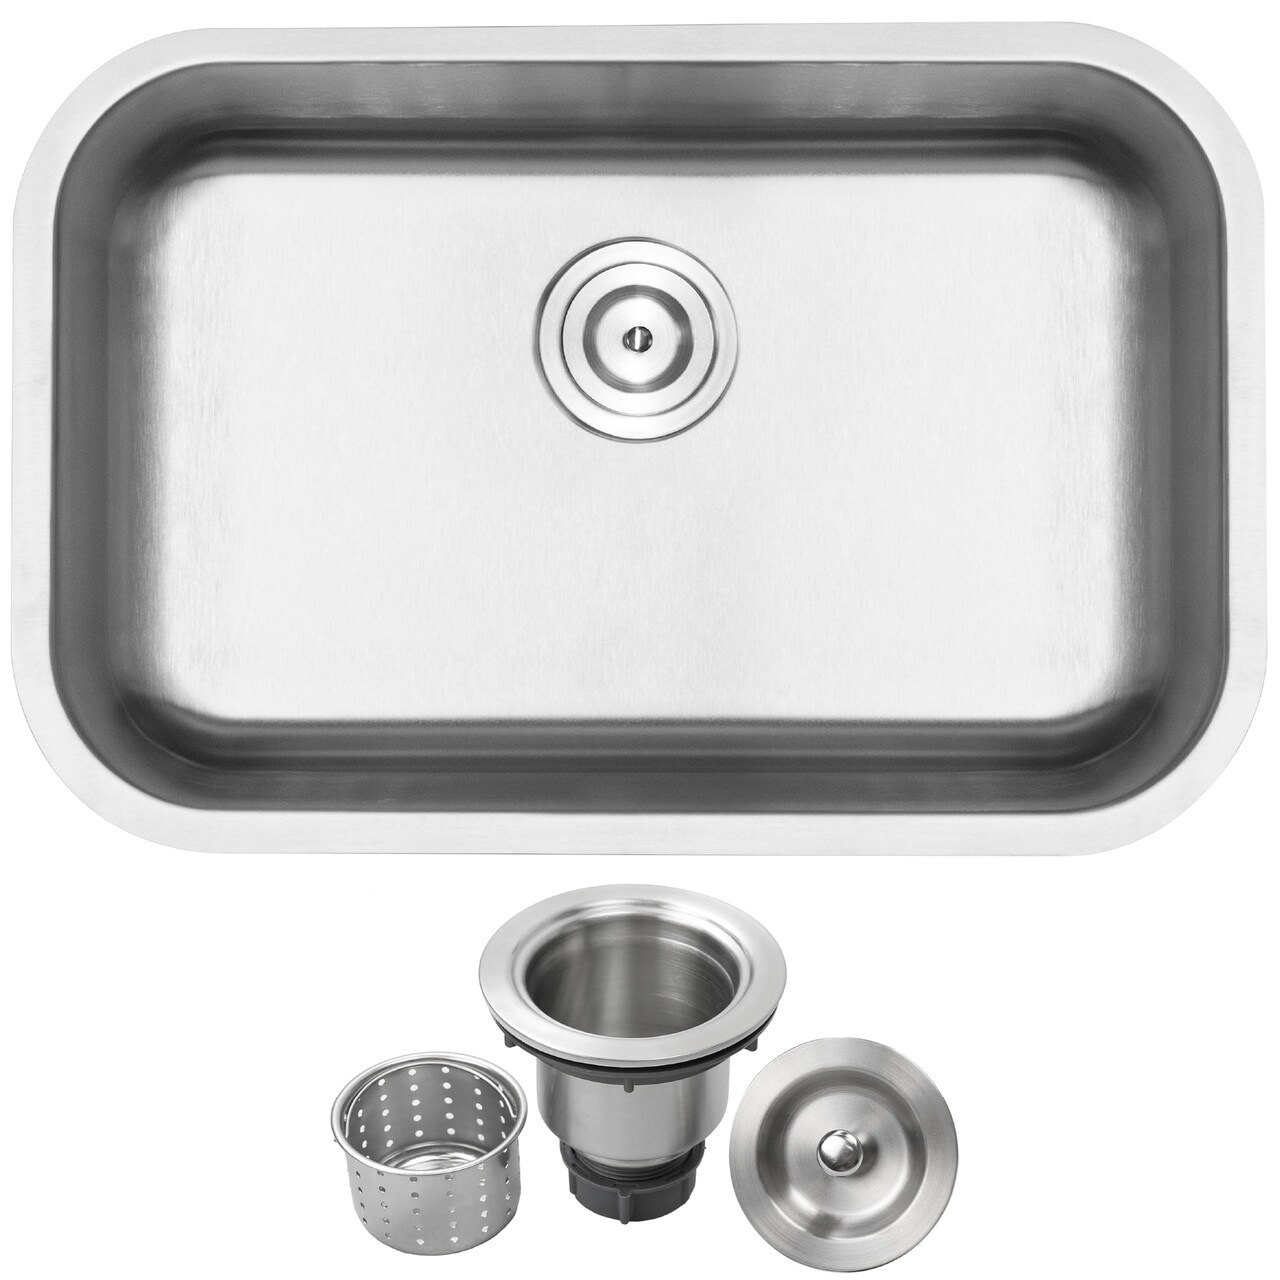 27 Ticor L18 18 Gauge Stainless Steel Undermount Single Basin Kitchen Sink